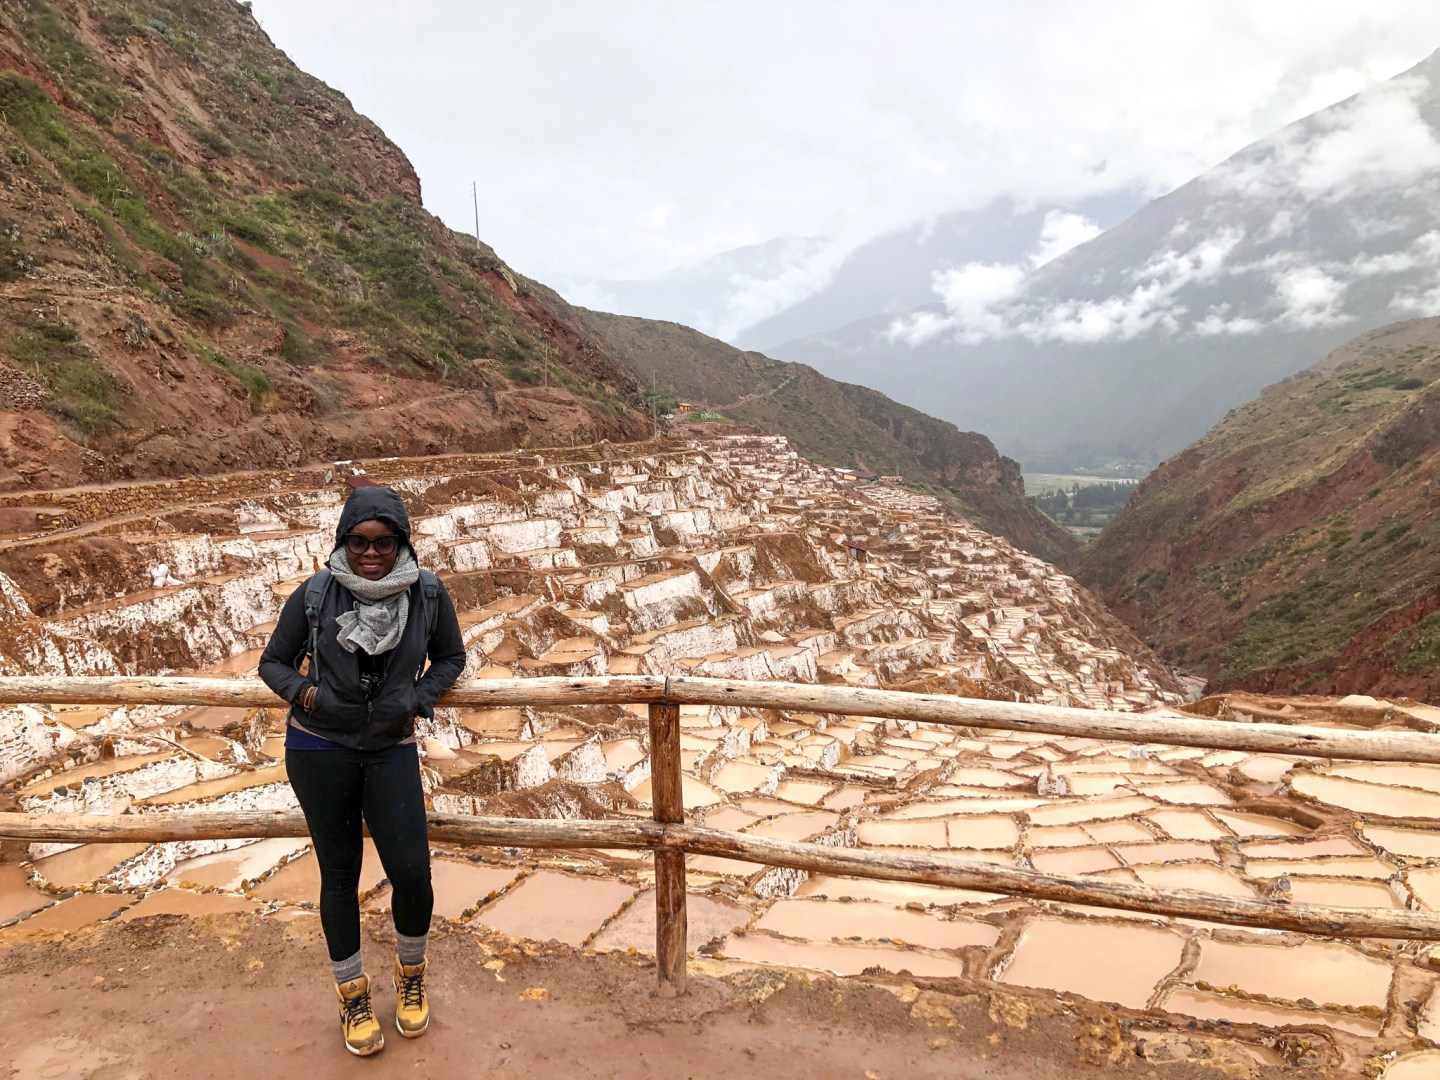 Black travel blogger at Las Salinas De Maras in Peru